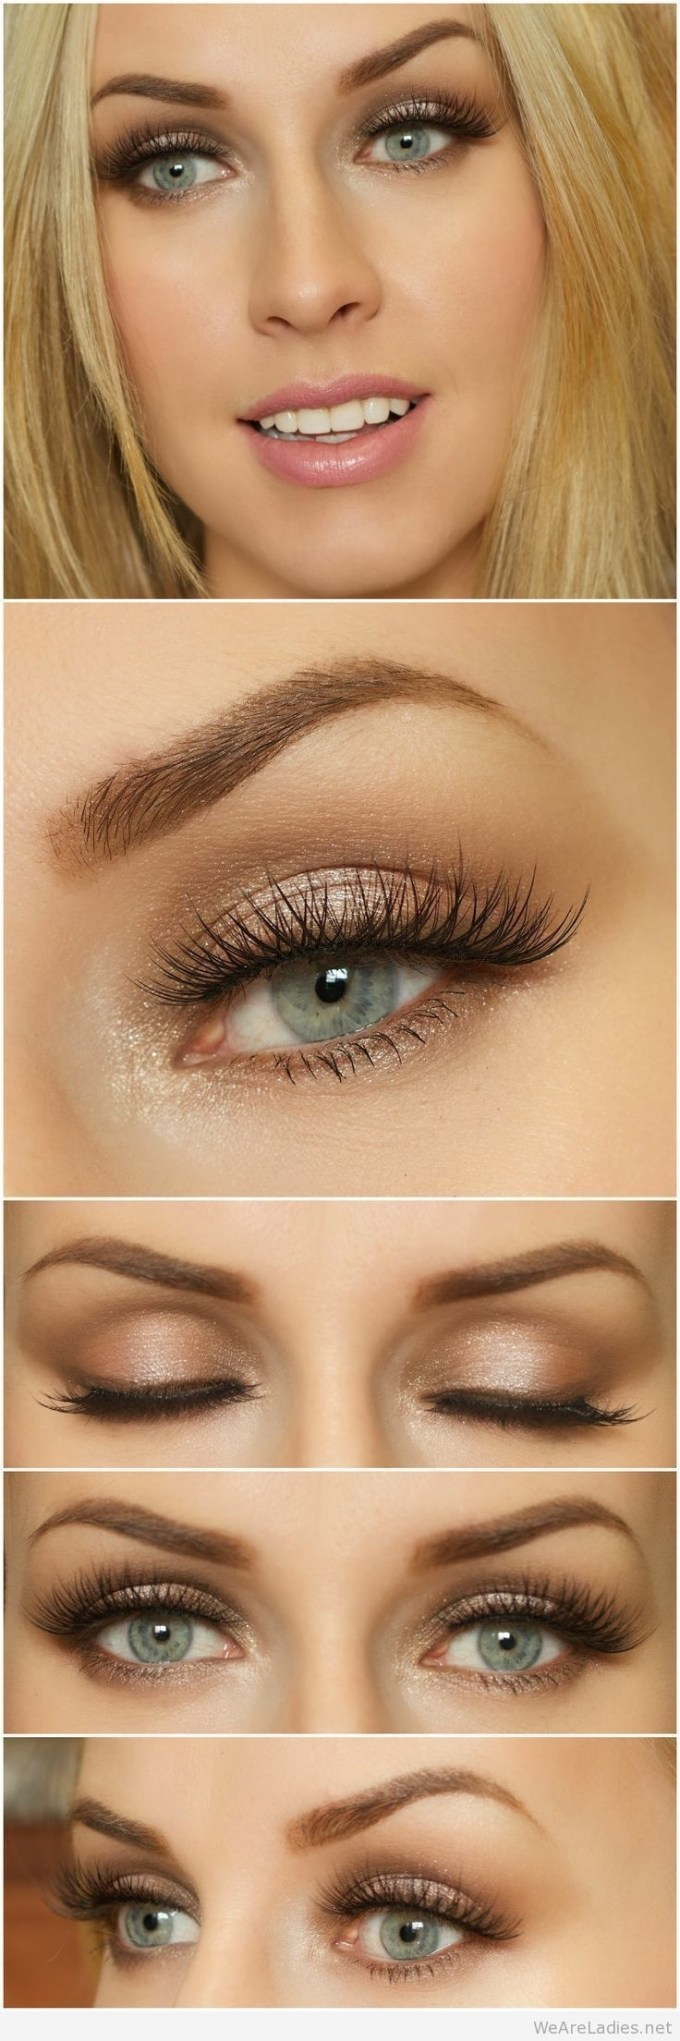 how to do makeup for green eyes and pale skin | saubhaya makeup